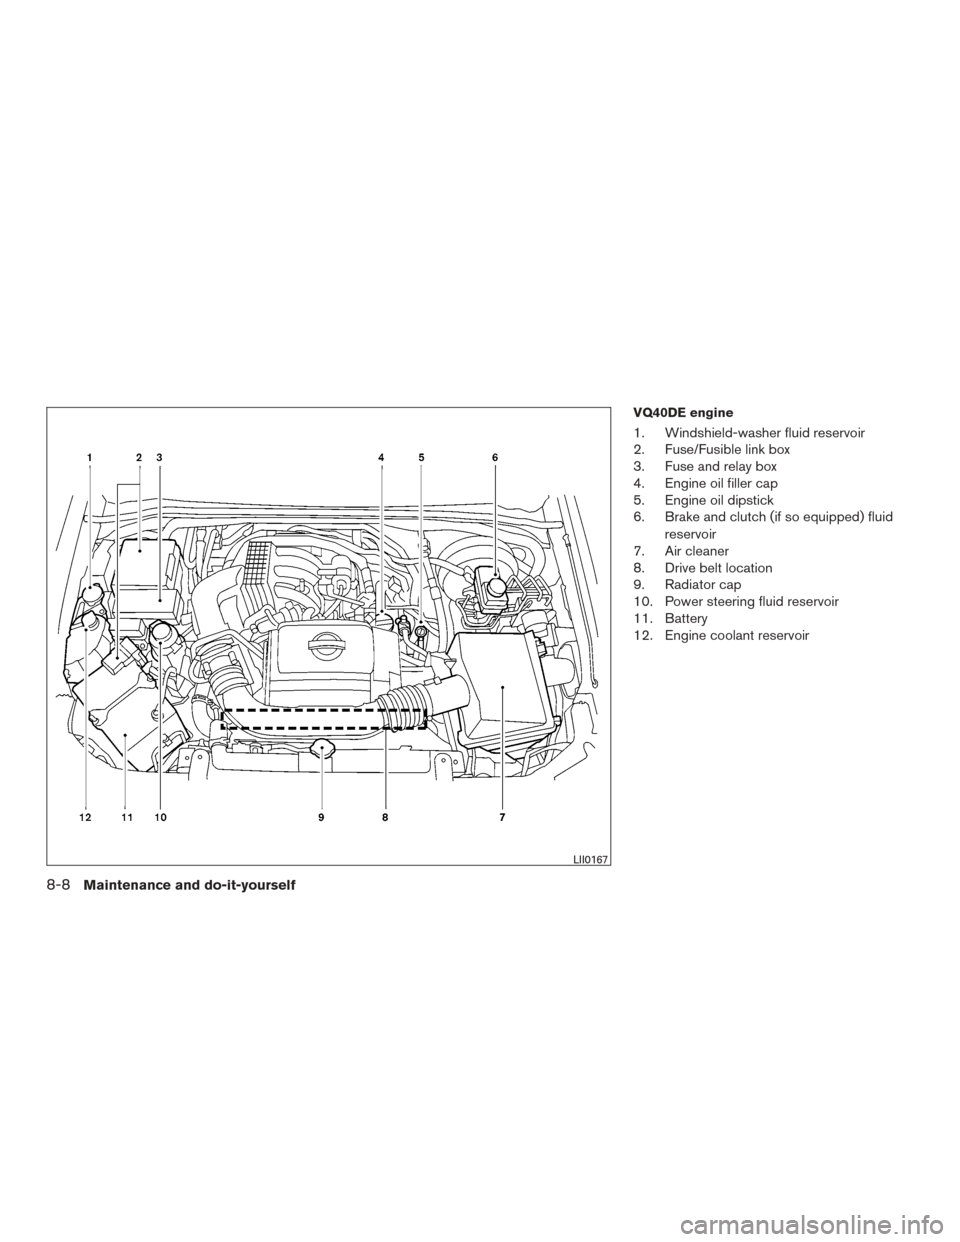 2014 volkswagen jetta fuse box diagram